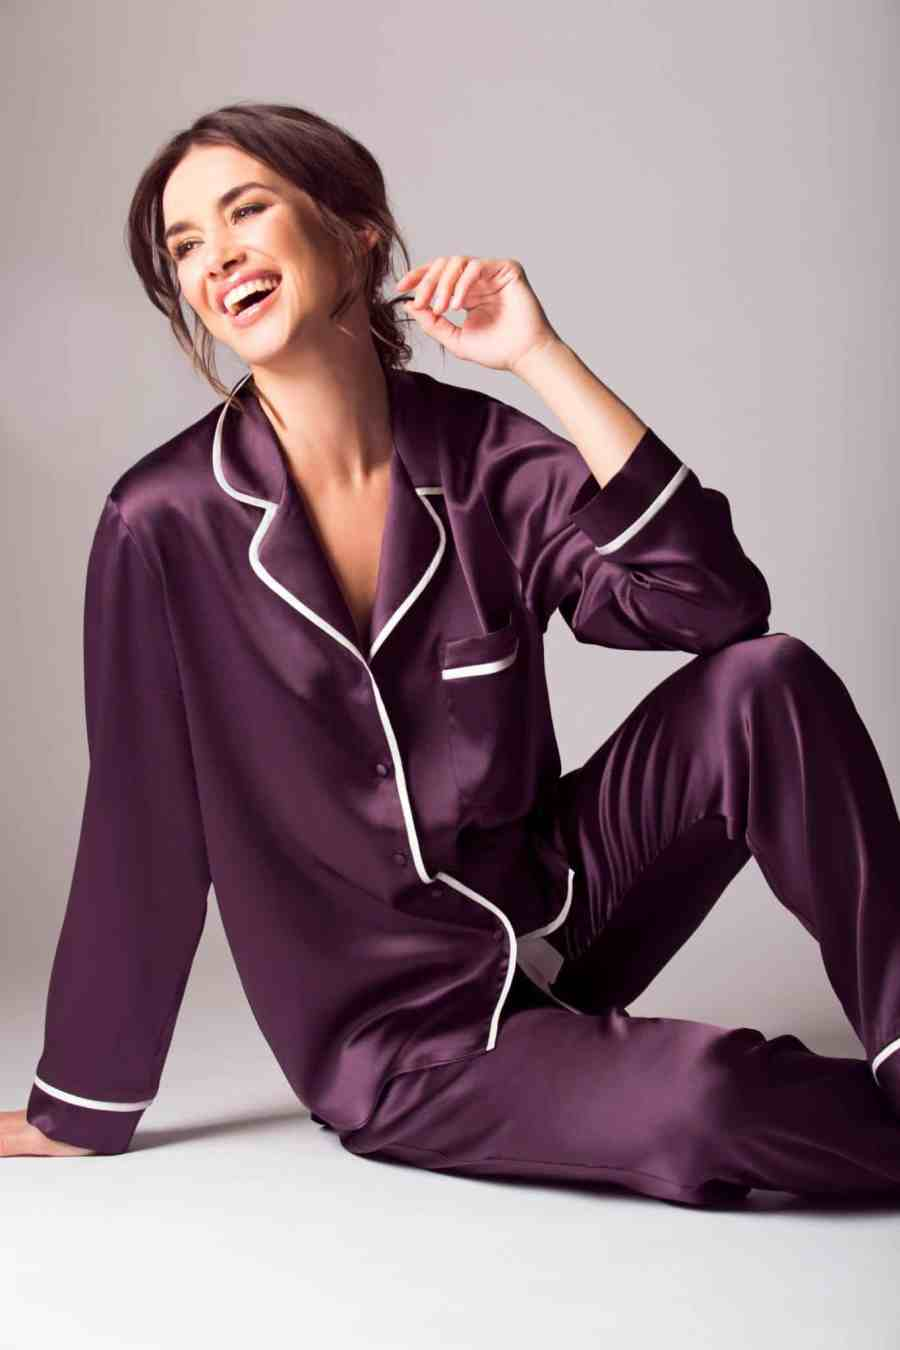 silk purple pajama with white lining is worn by a women